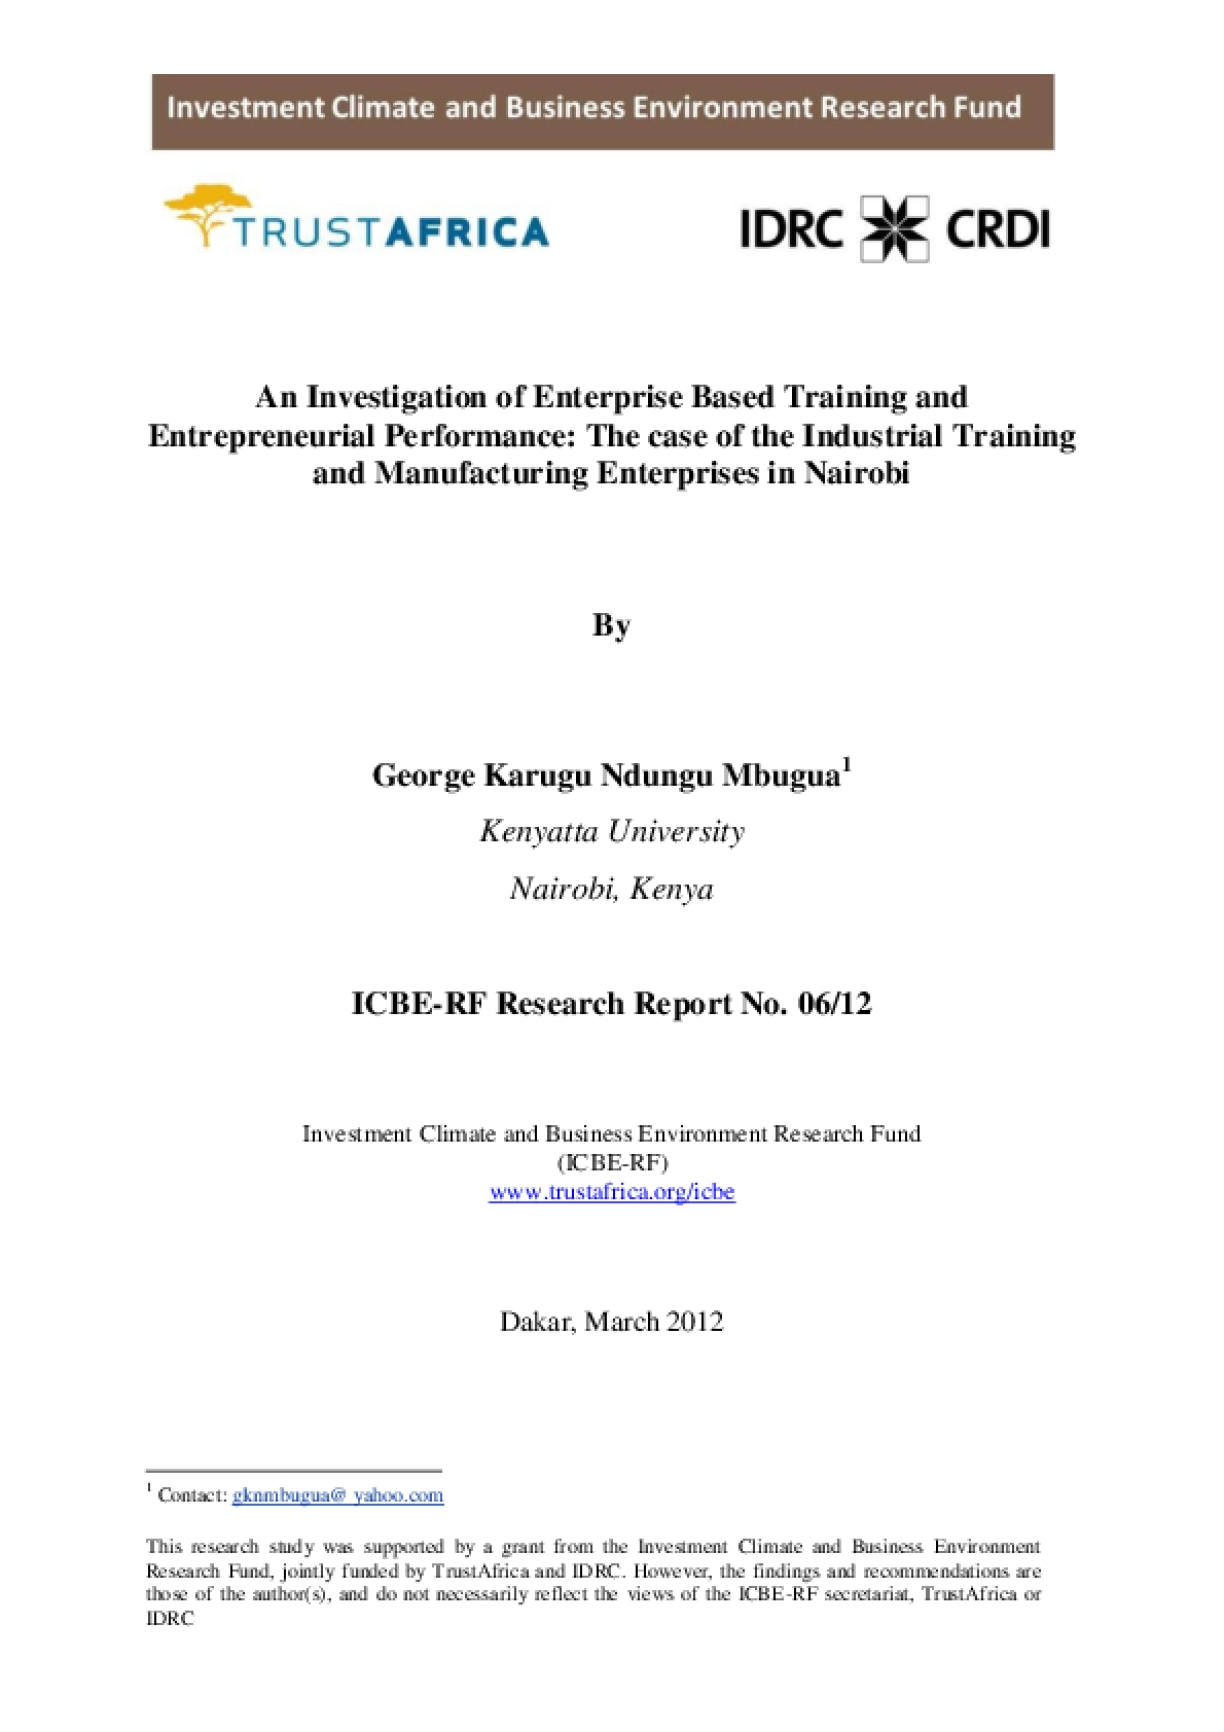 An Investigation of Enterprise Based Training and Entrepreneurial Performance: The case of the Industrial Training and Manufacturing Enterprises in Nairobi